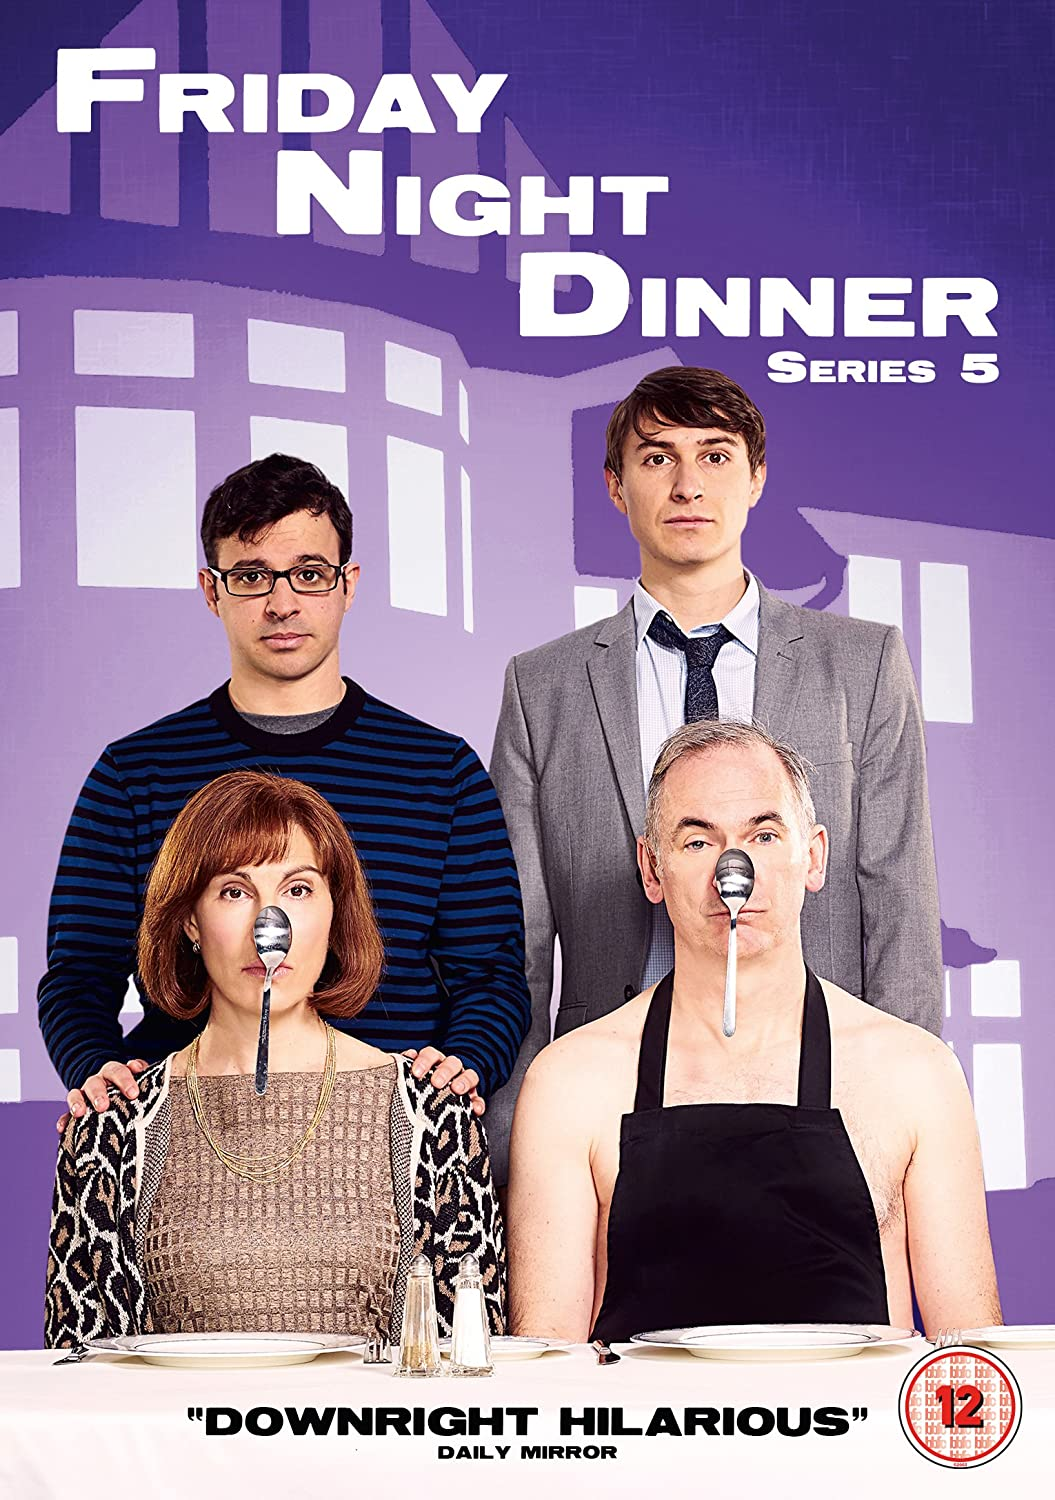 Friday Night Dinner: Series 5